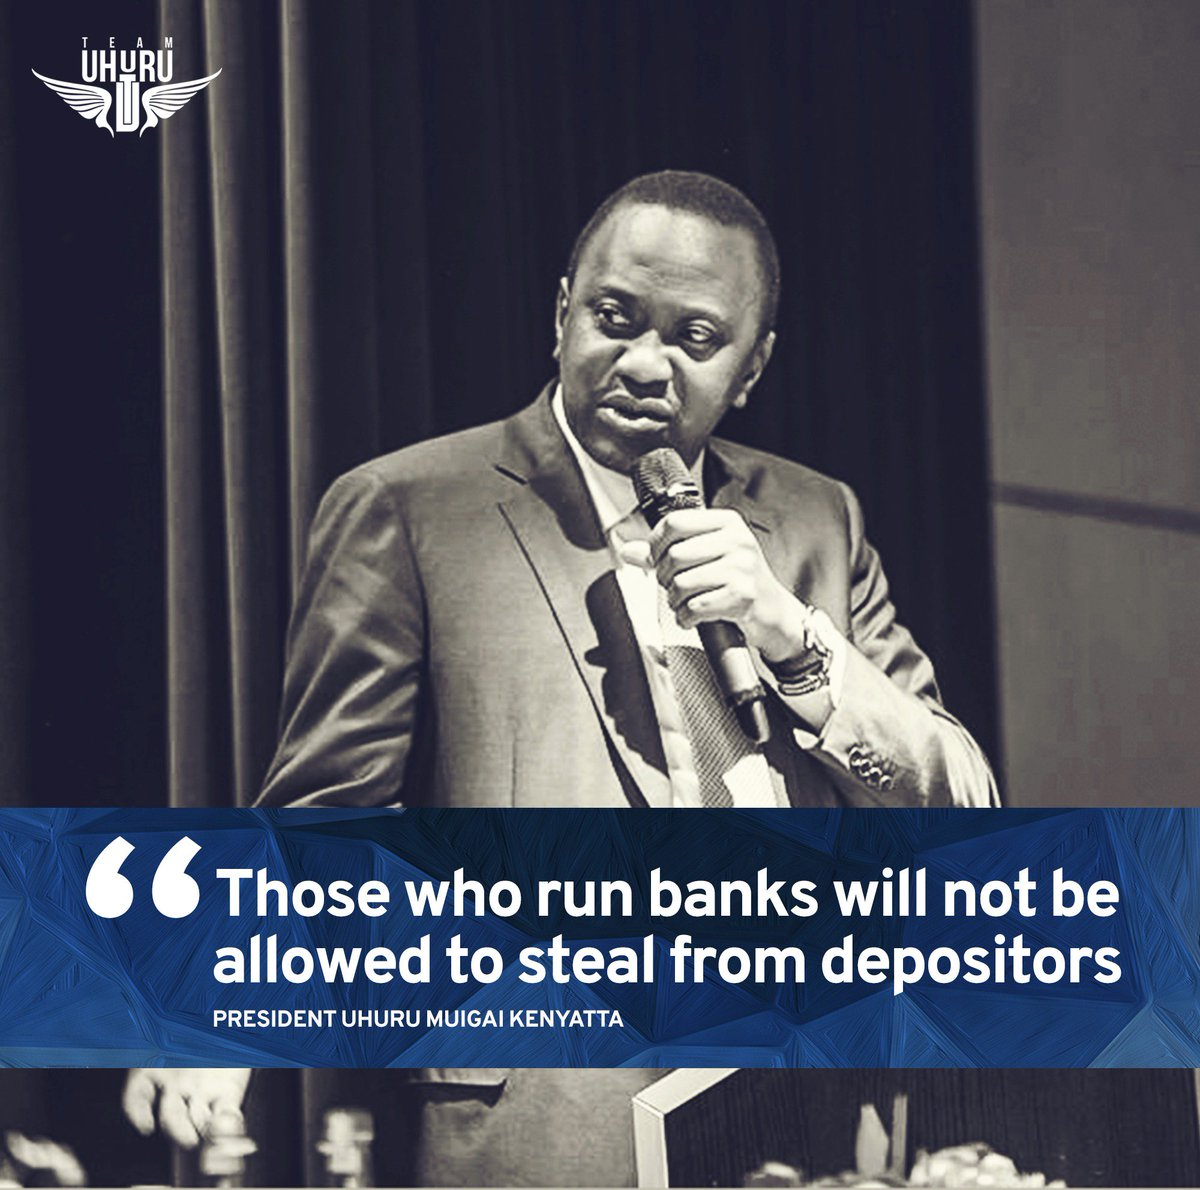 He said mismanagement by unscrupulous individuals in the financial sector will not be allowed to hurt depositors. https://t.co/IIvq3otJHA